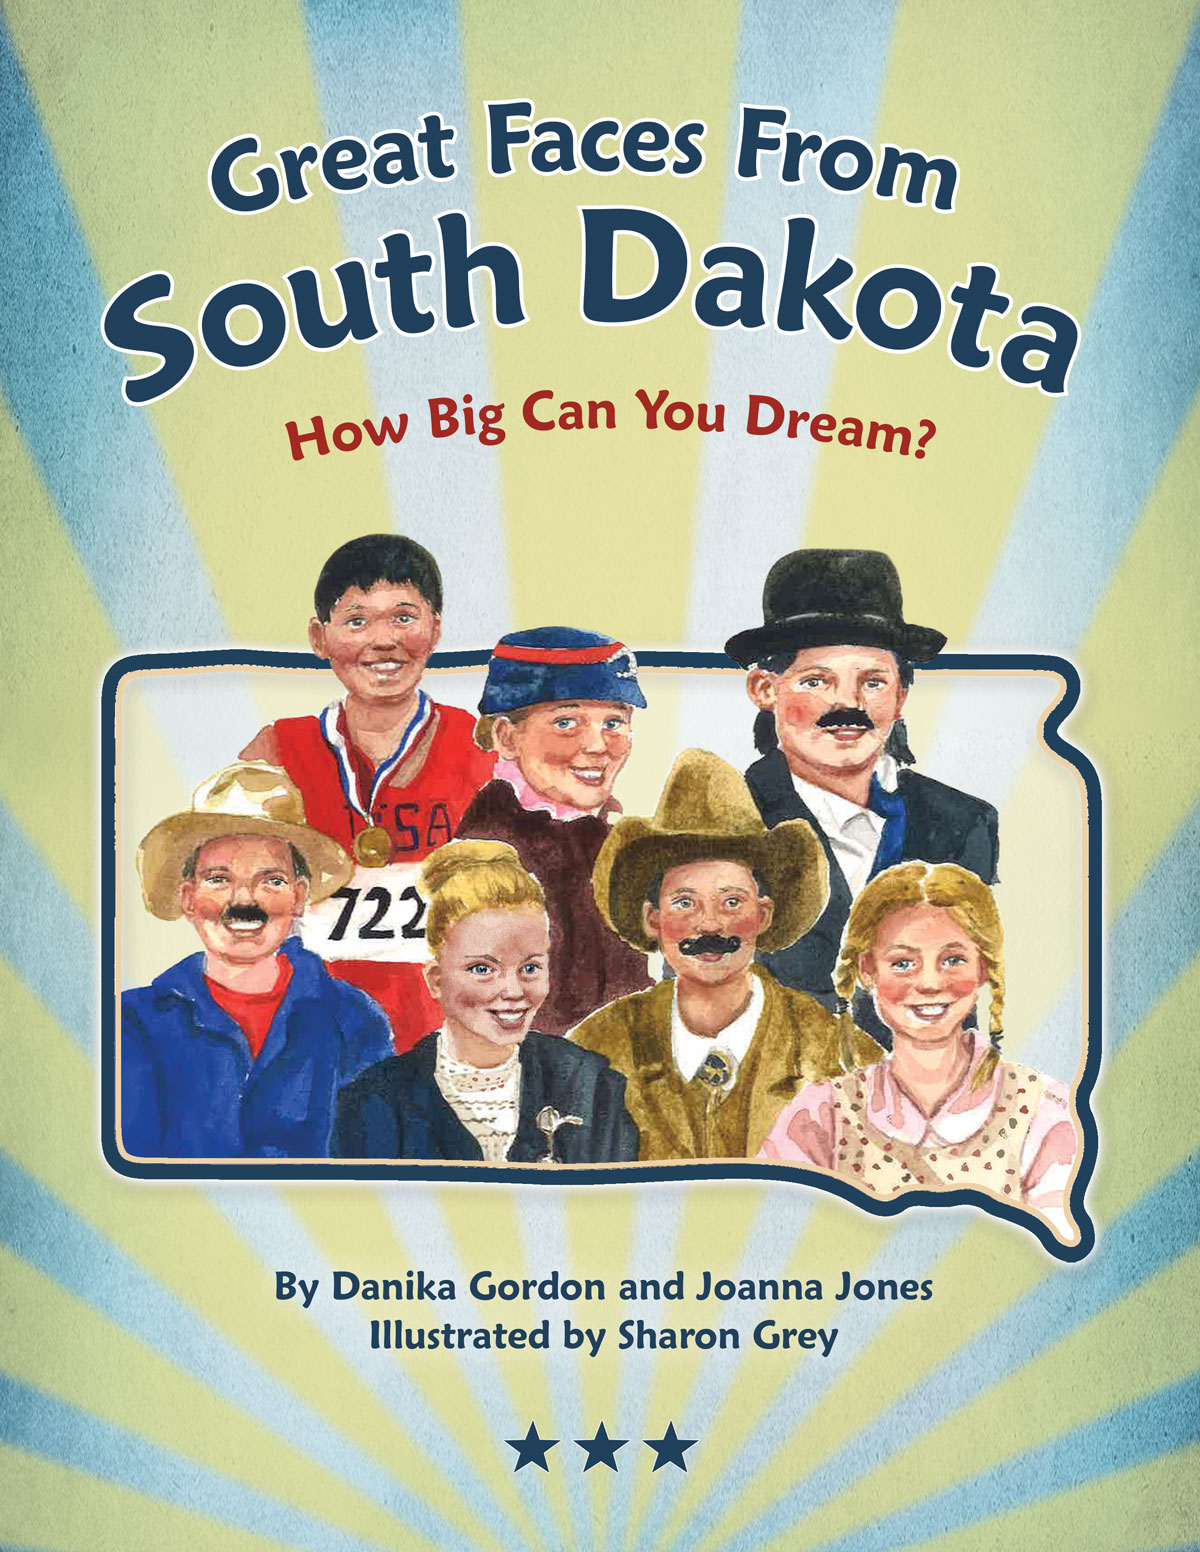 Great Faces from South Dakota